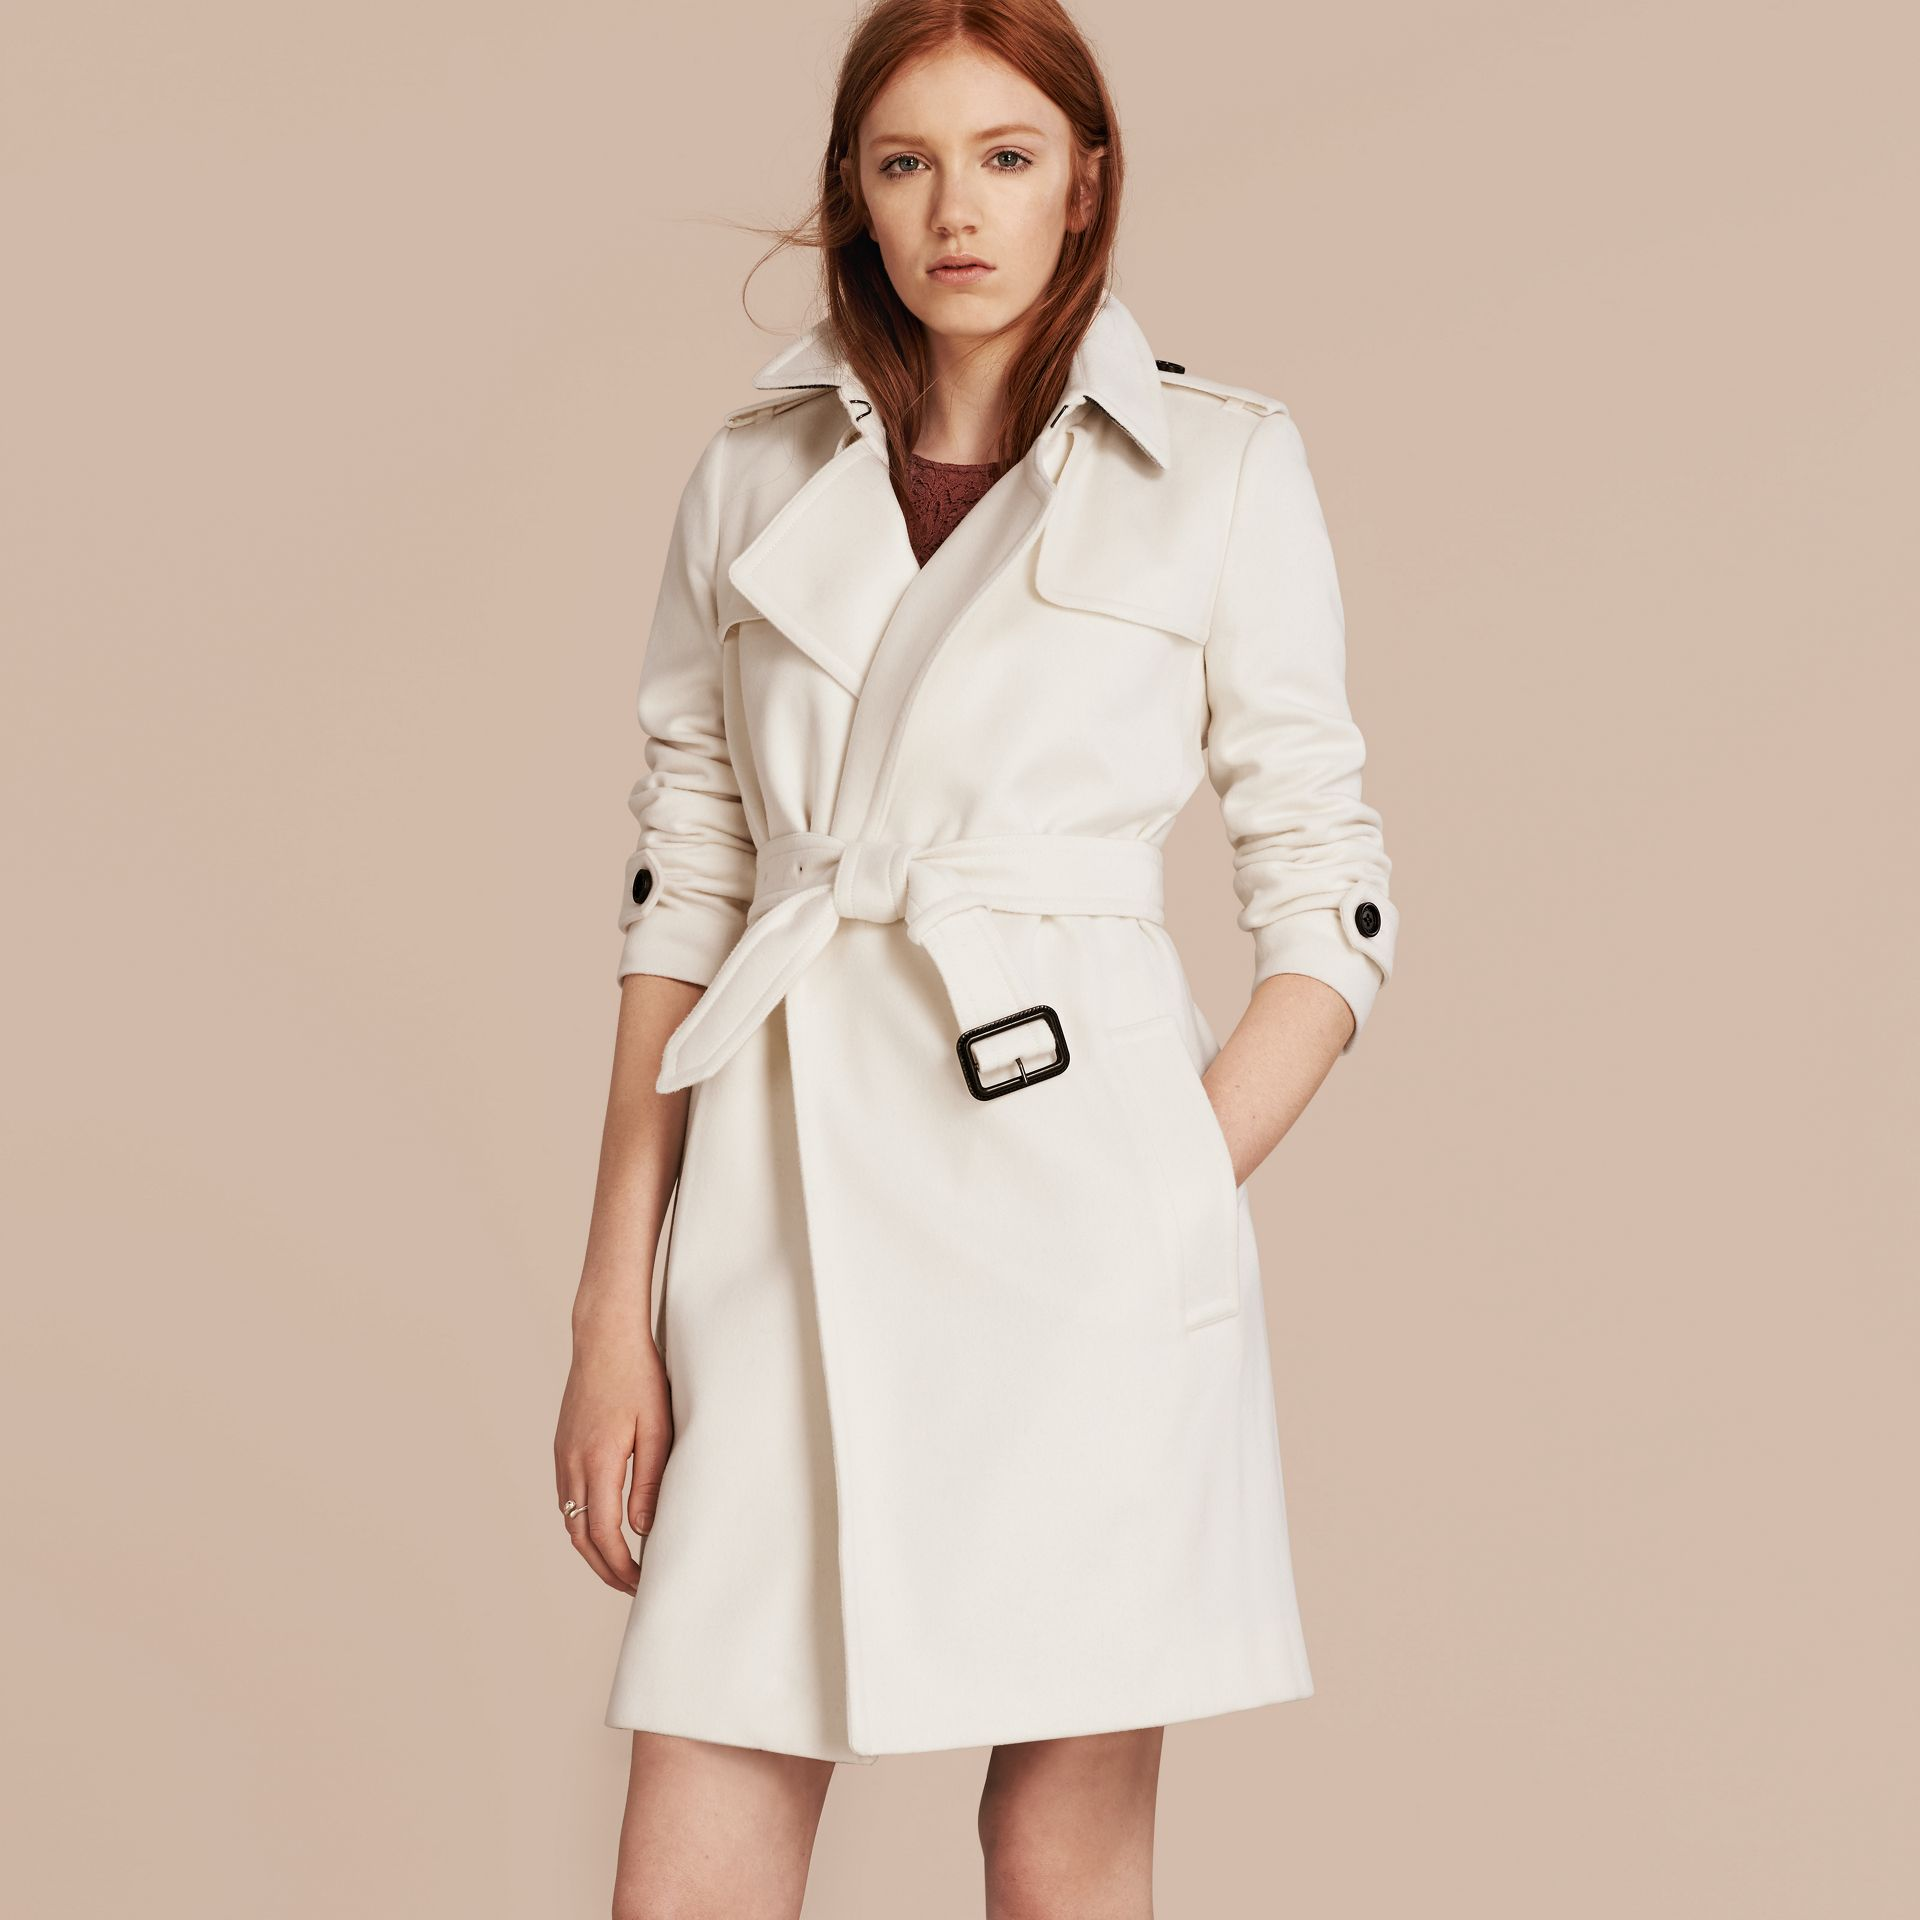 Blanc Trench-coat portefeuille en cachemire Blanc - photo de la galerie 7